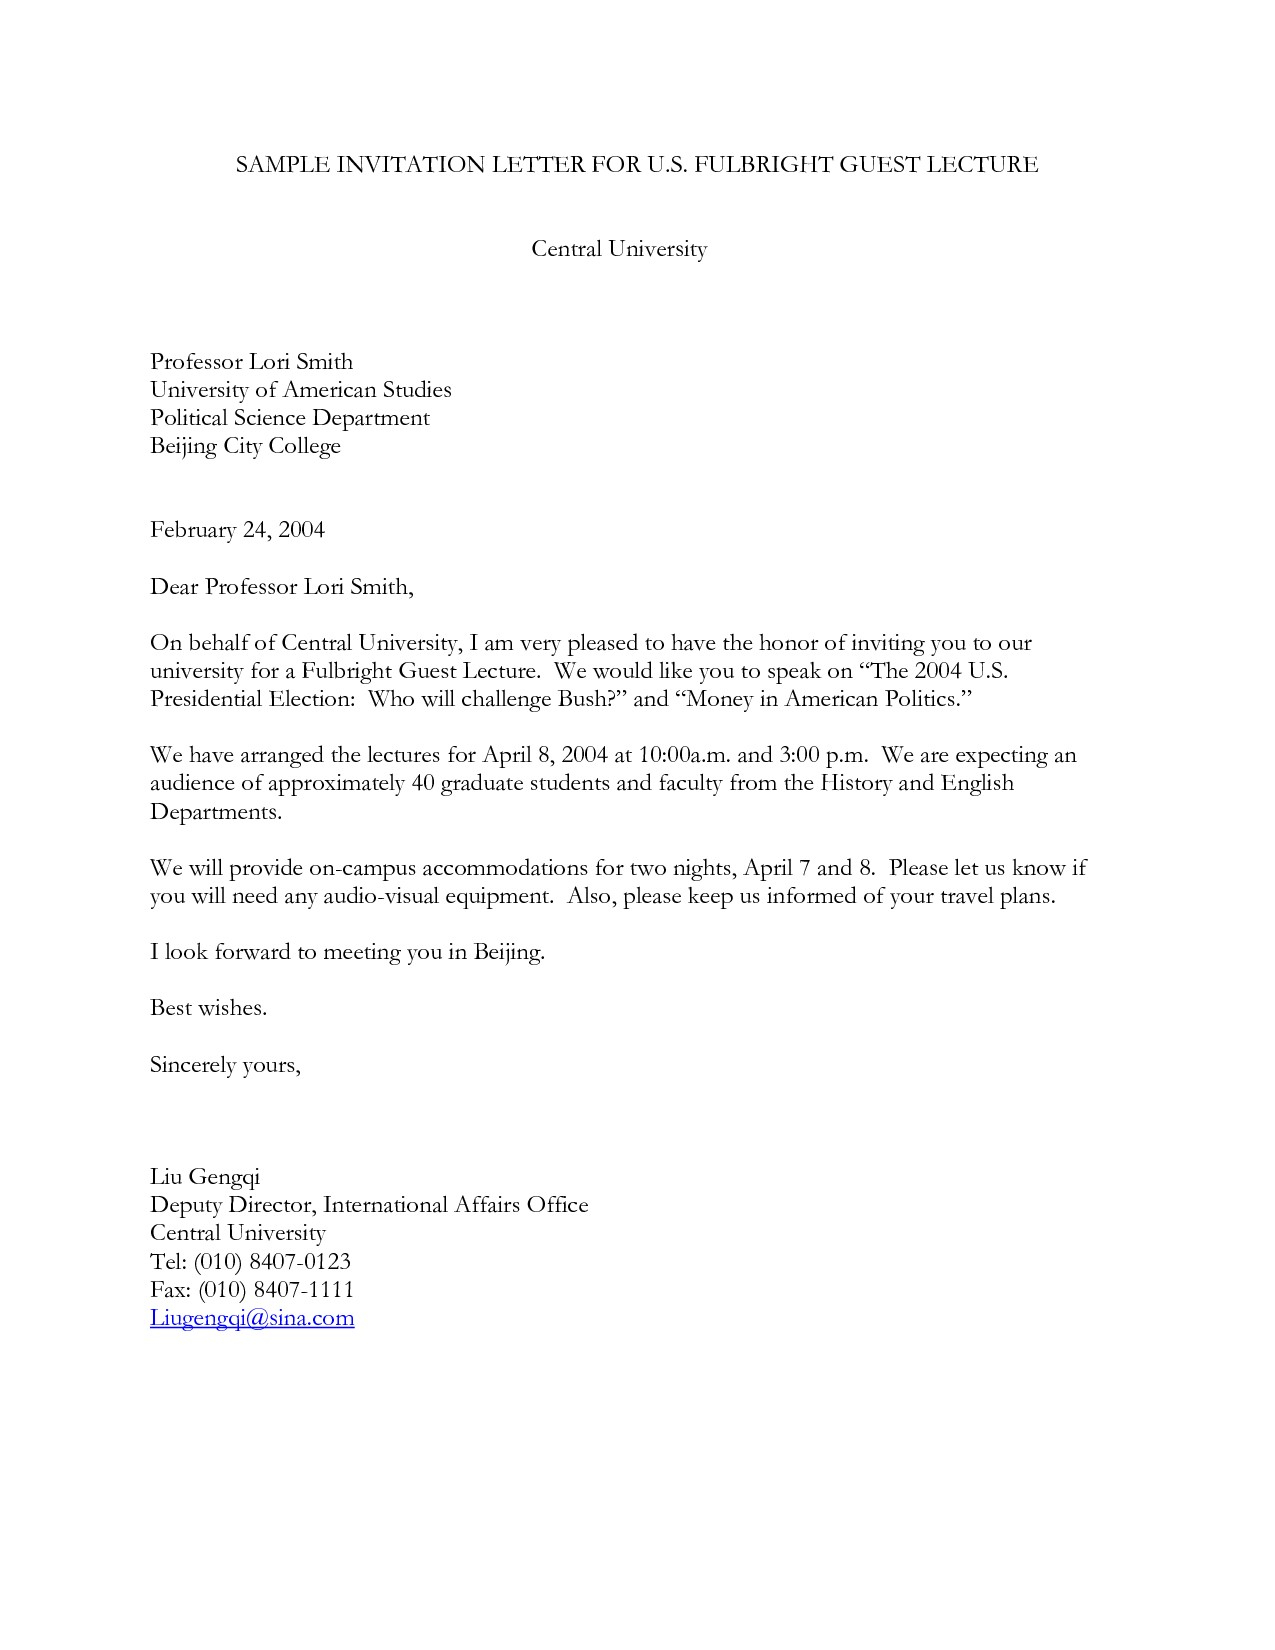 how to write a cover letter for a visa application